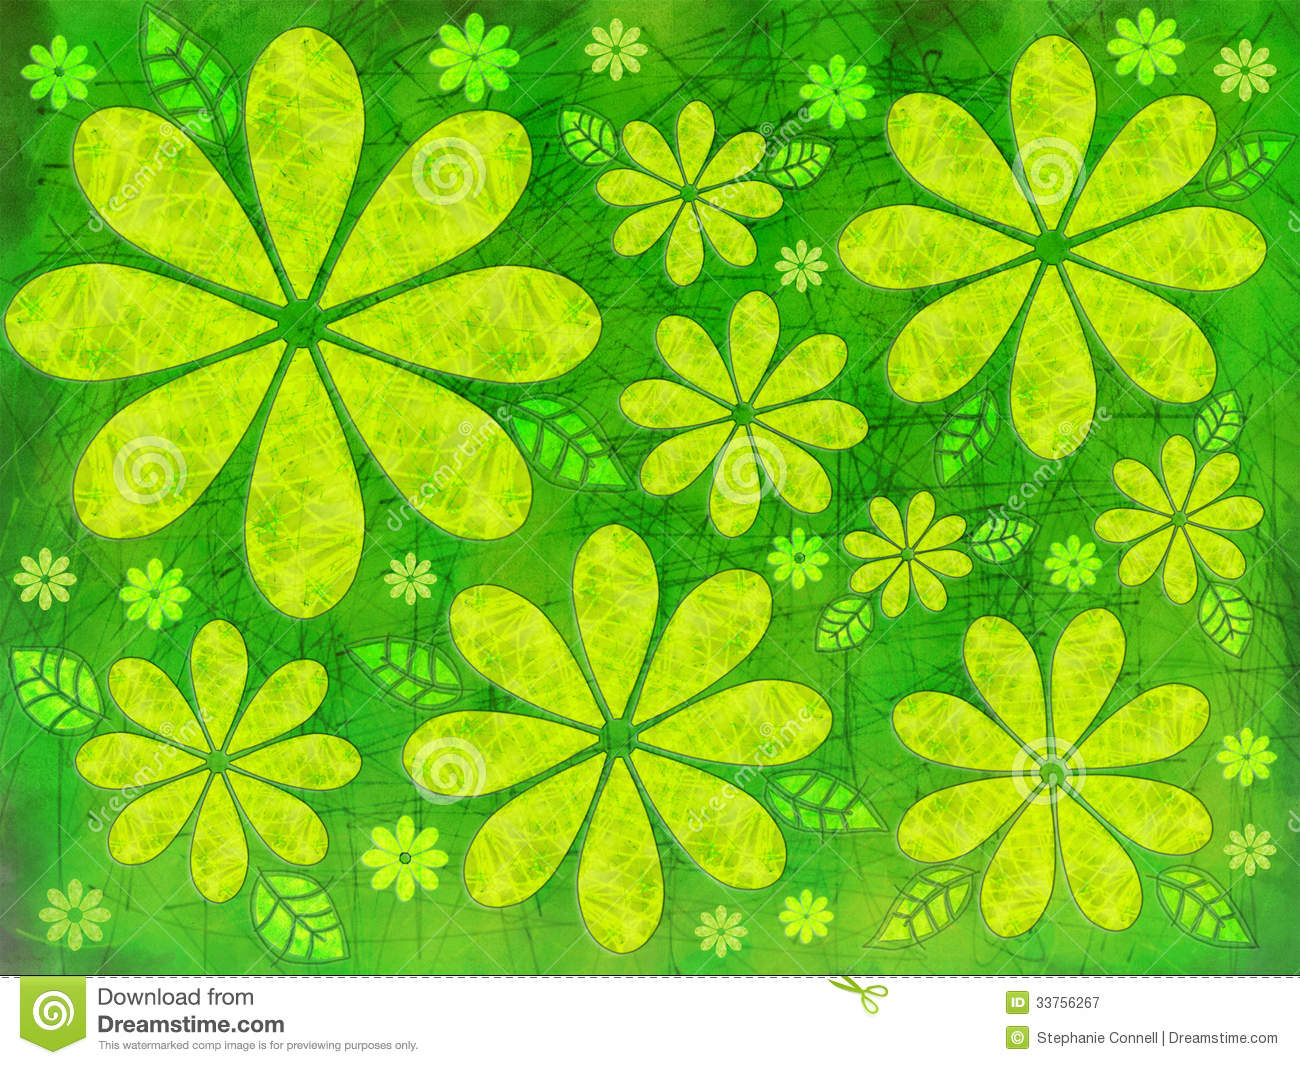 Floral Green Illustration Stock Illustration. Illustration